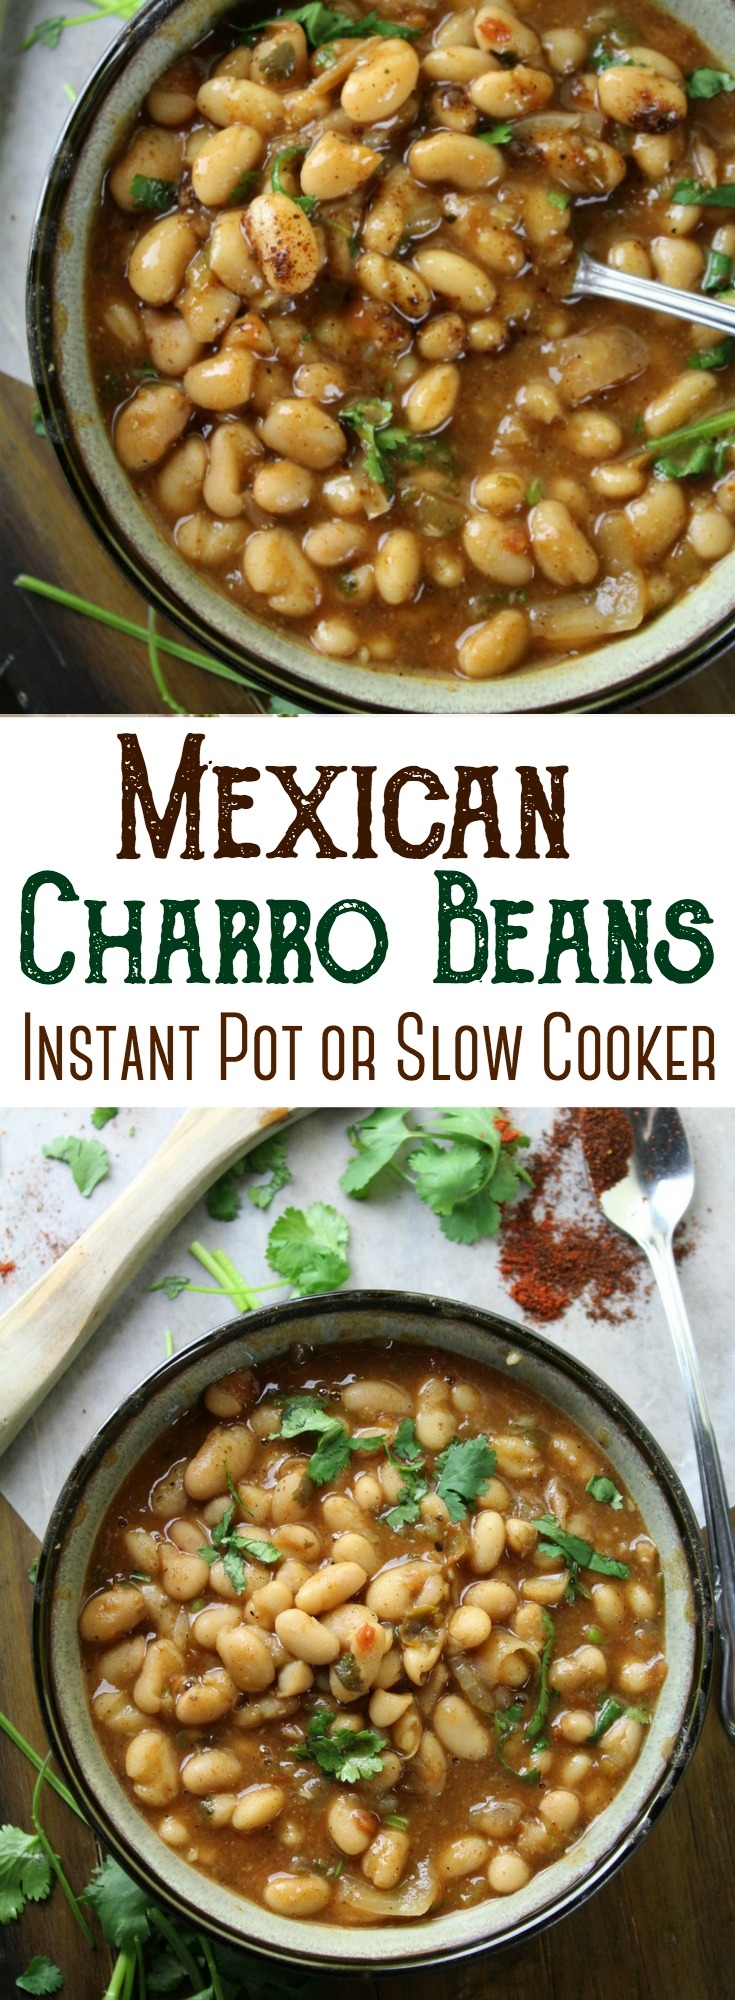 Simple Mexican Charro Beans - flavored with garlic, tomatoes, cilantro and lots of spices! They are the perfect beans to accompany your favorite Mexican entree!  #Mexican #charrobeans #pintobeans #InstantPot #SlowCooker